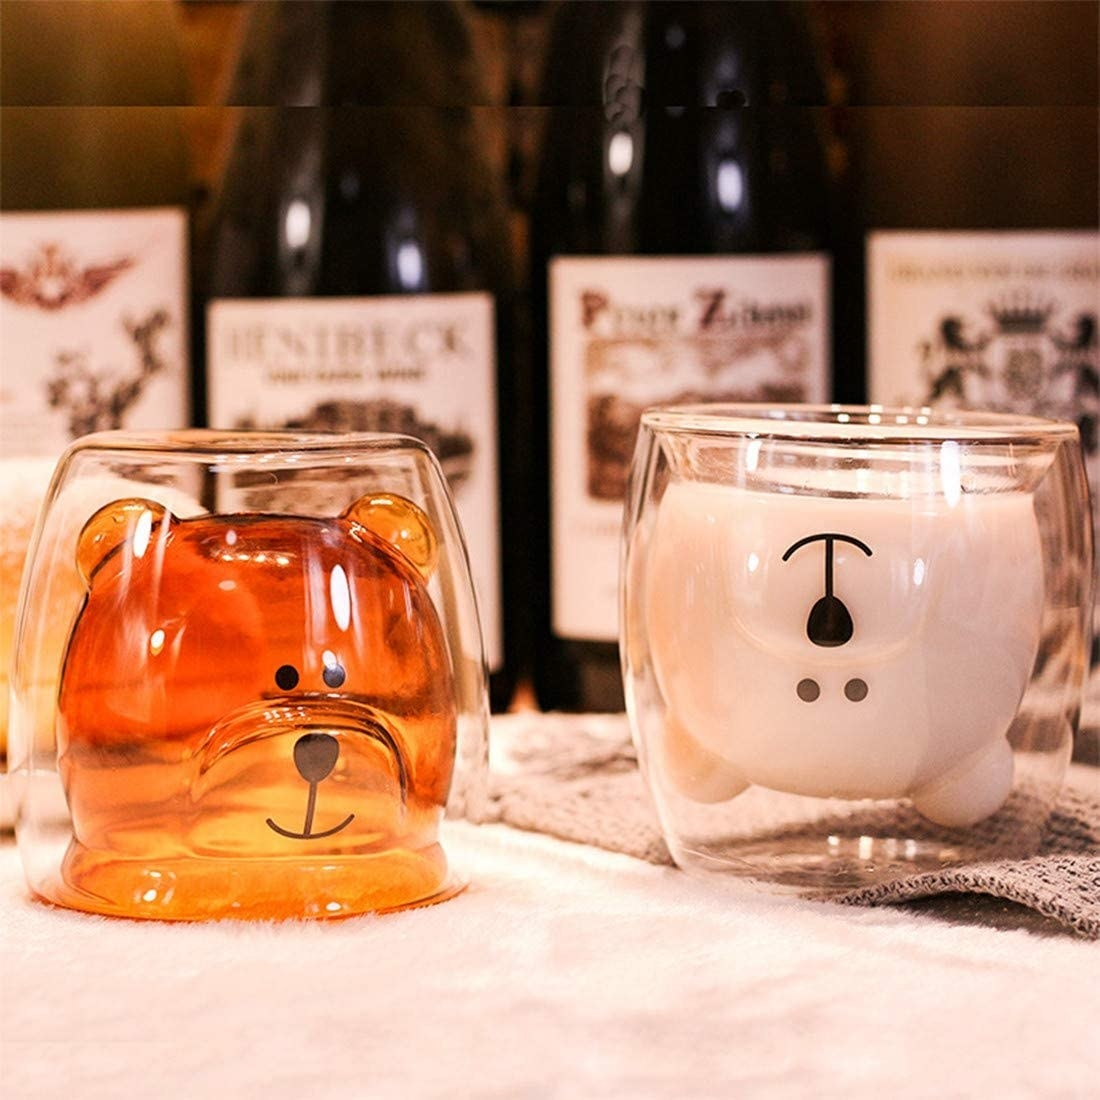 a glass mug with a bear inside of it that fills in with color when you pour a liquid in